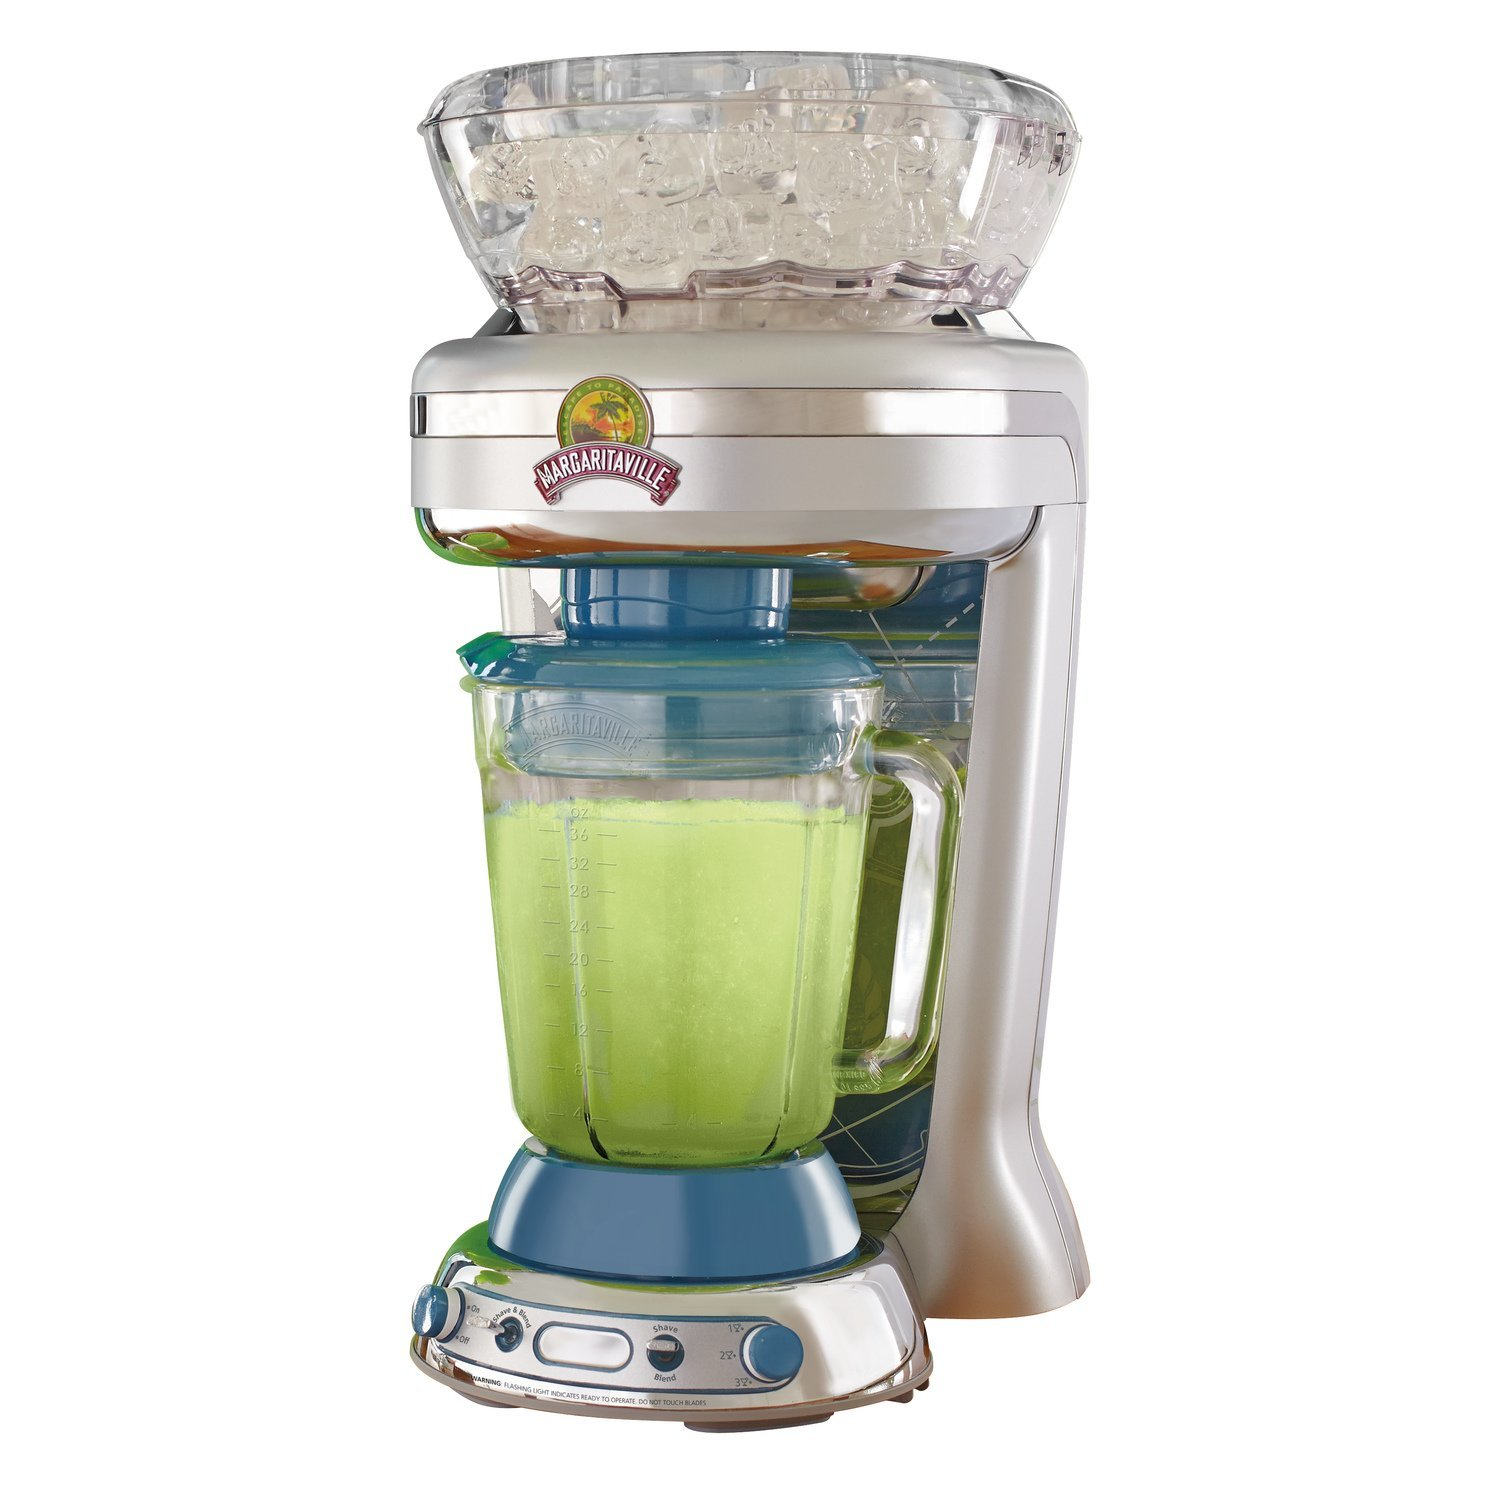 Margaritaville Key West Frozen Concoction Maker with Easy Pour Jar and XL Ice Reservoir, DM1900 by Margaritaville